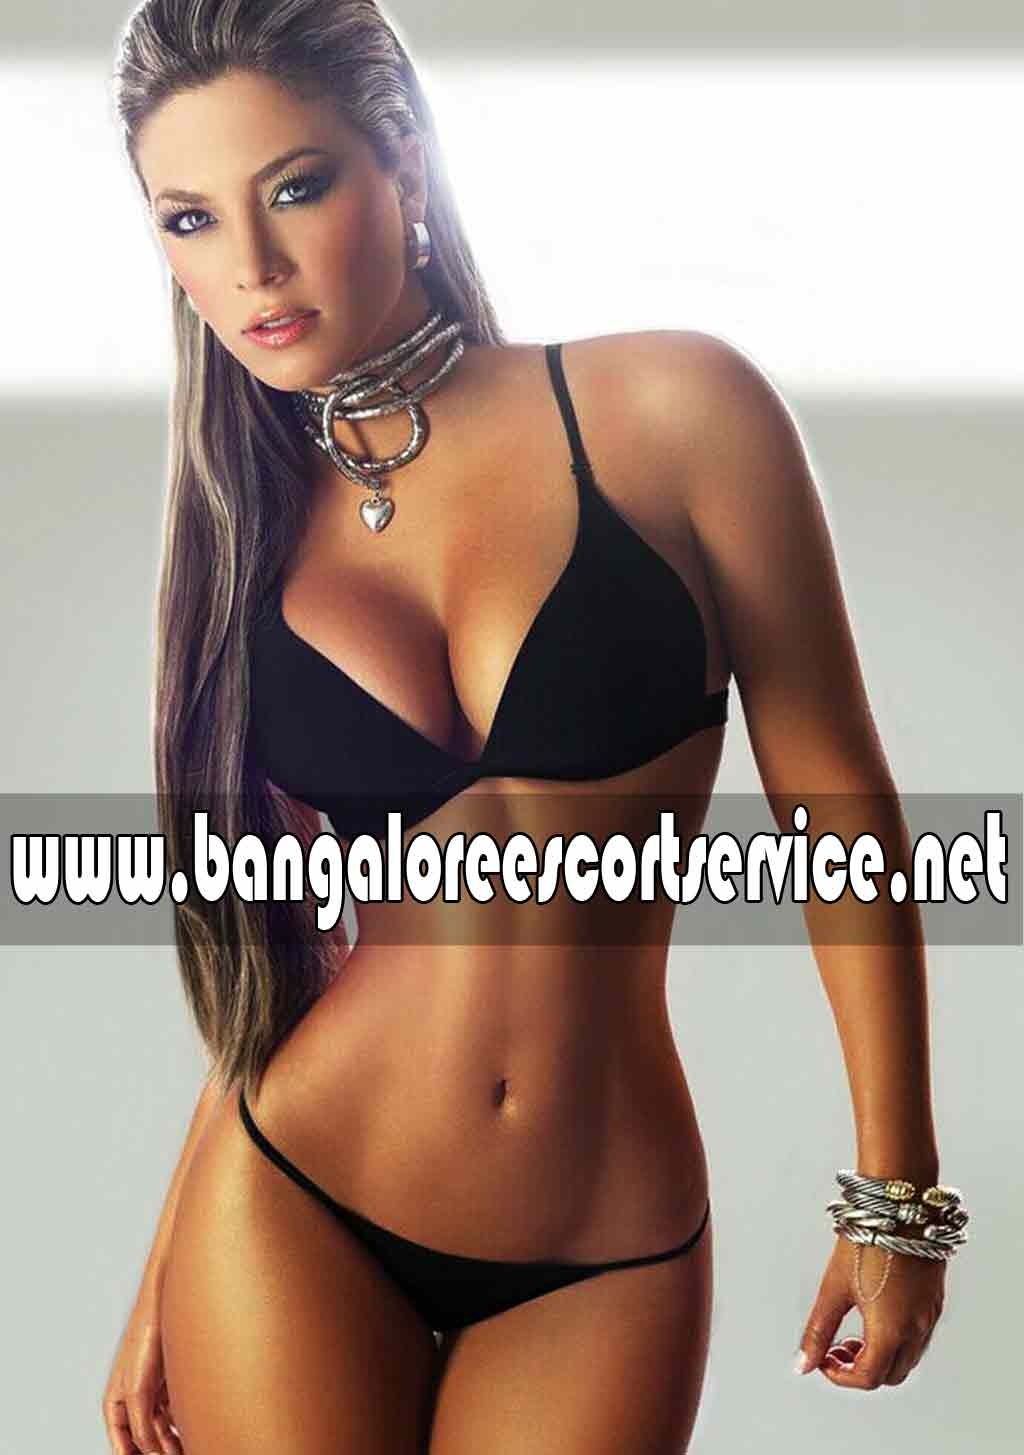 escorts services in Bangalore